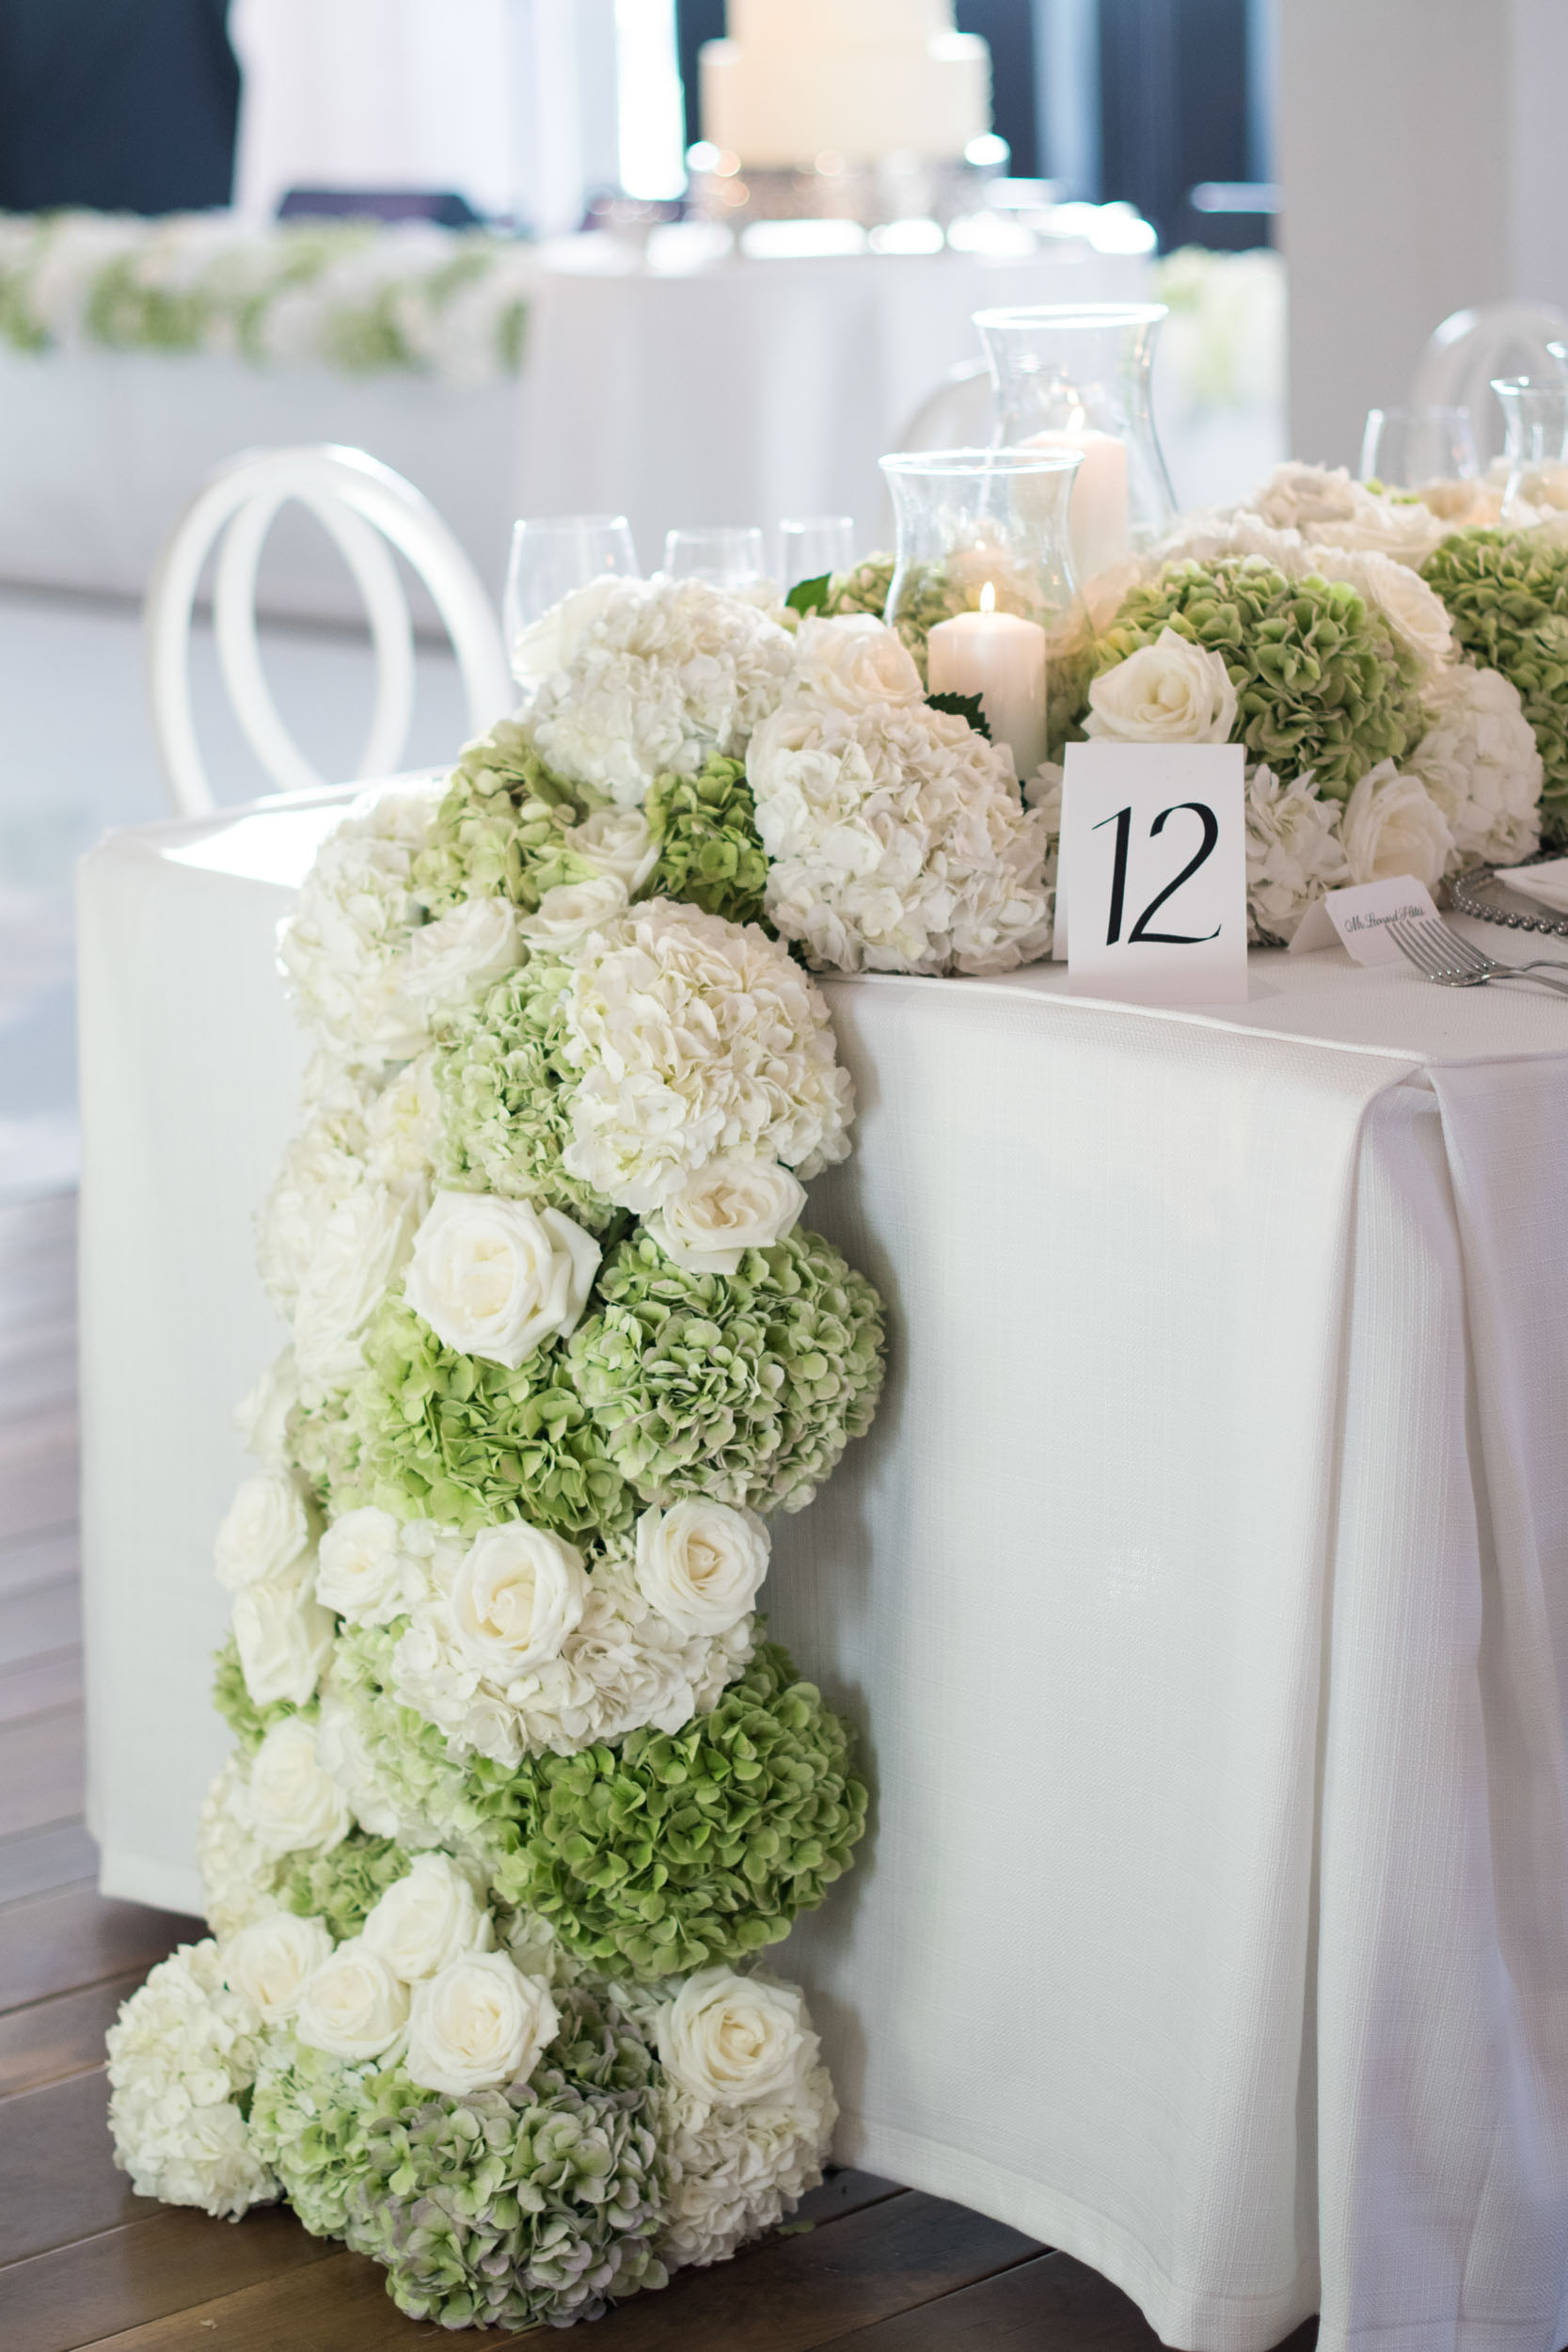 Floral table runner with hydrangeas and roses at Kiawah Island River Course.